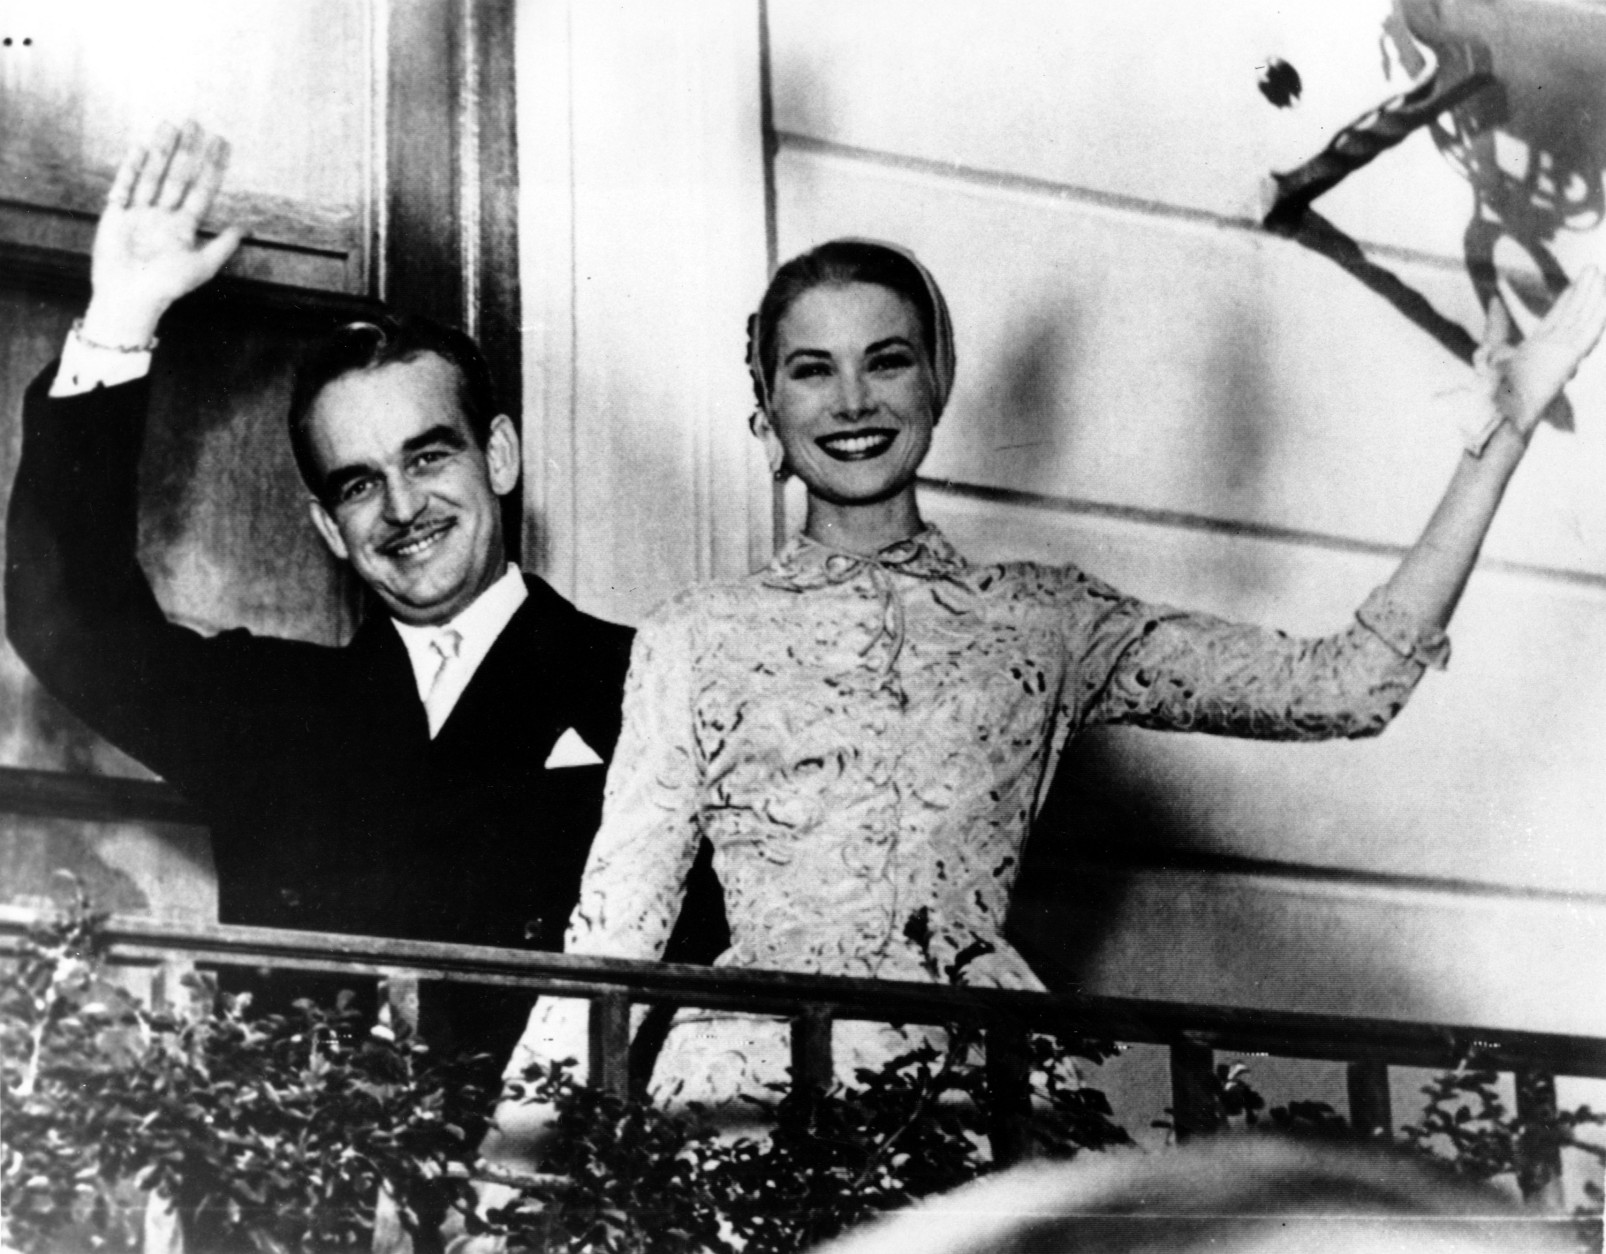 Prince Rainier III and actress Princess Grace Kelly wave from the palace terrace at Monaco in the South of France on April 18, 1956. The couple is hosting a garden party for the people of Monaco on the palace grounds after being married in a civil ceremony at the palace a few hours earlier. (AP Photo)